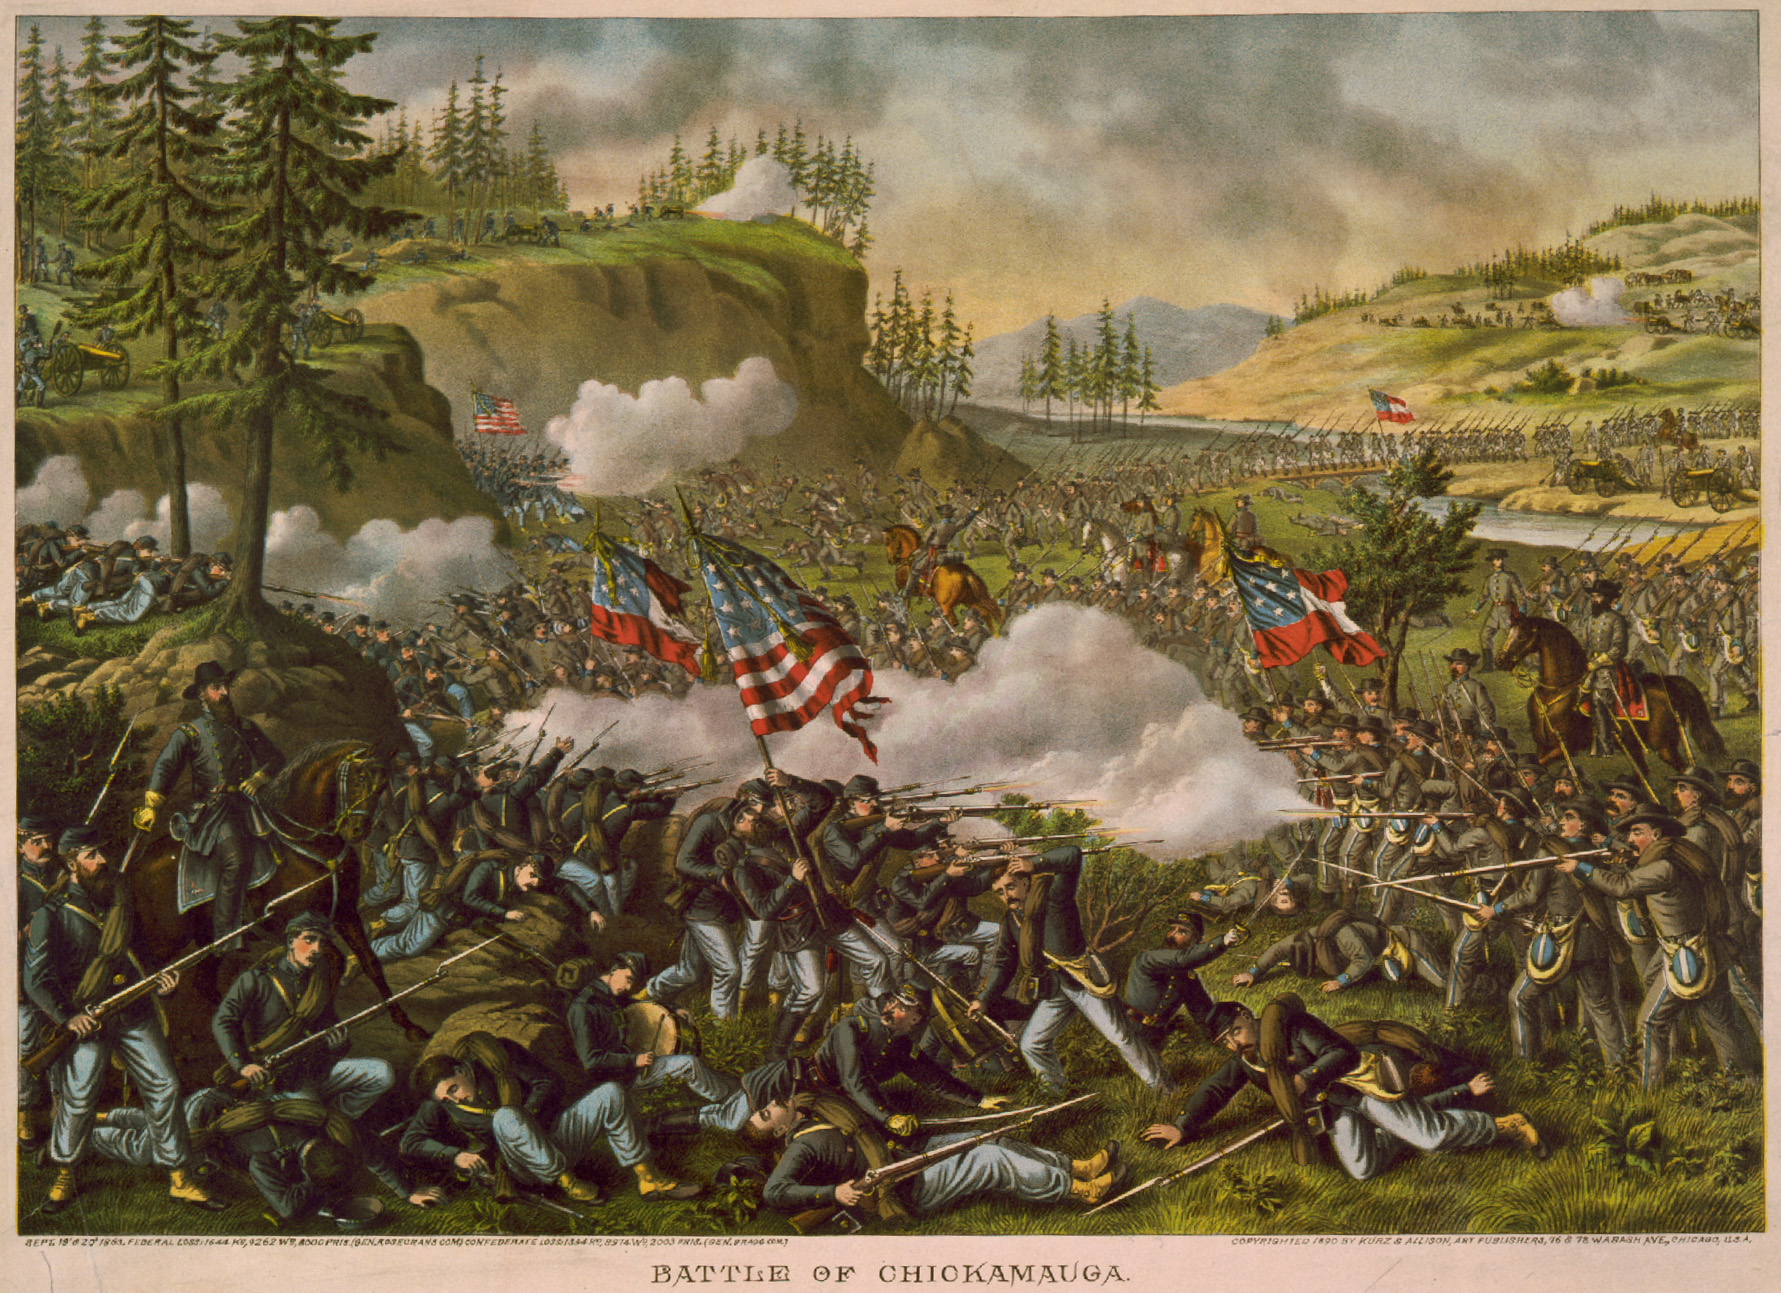 The Battle of Chickamauga, witnessed by Nadine and described in her diary.